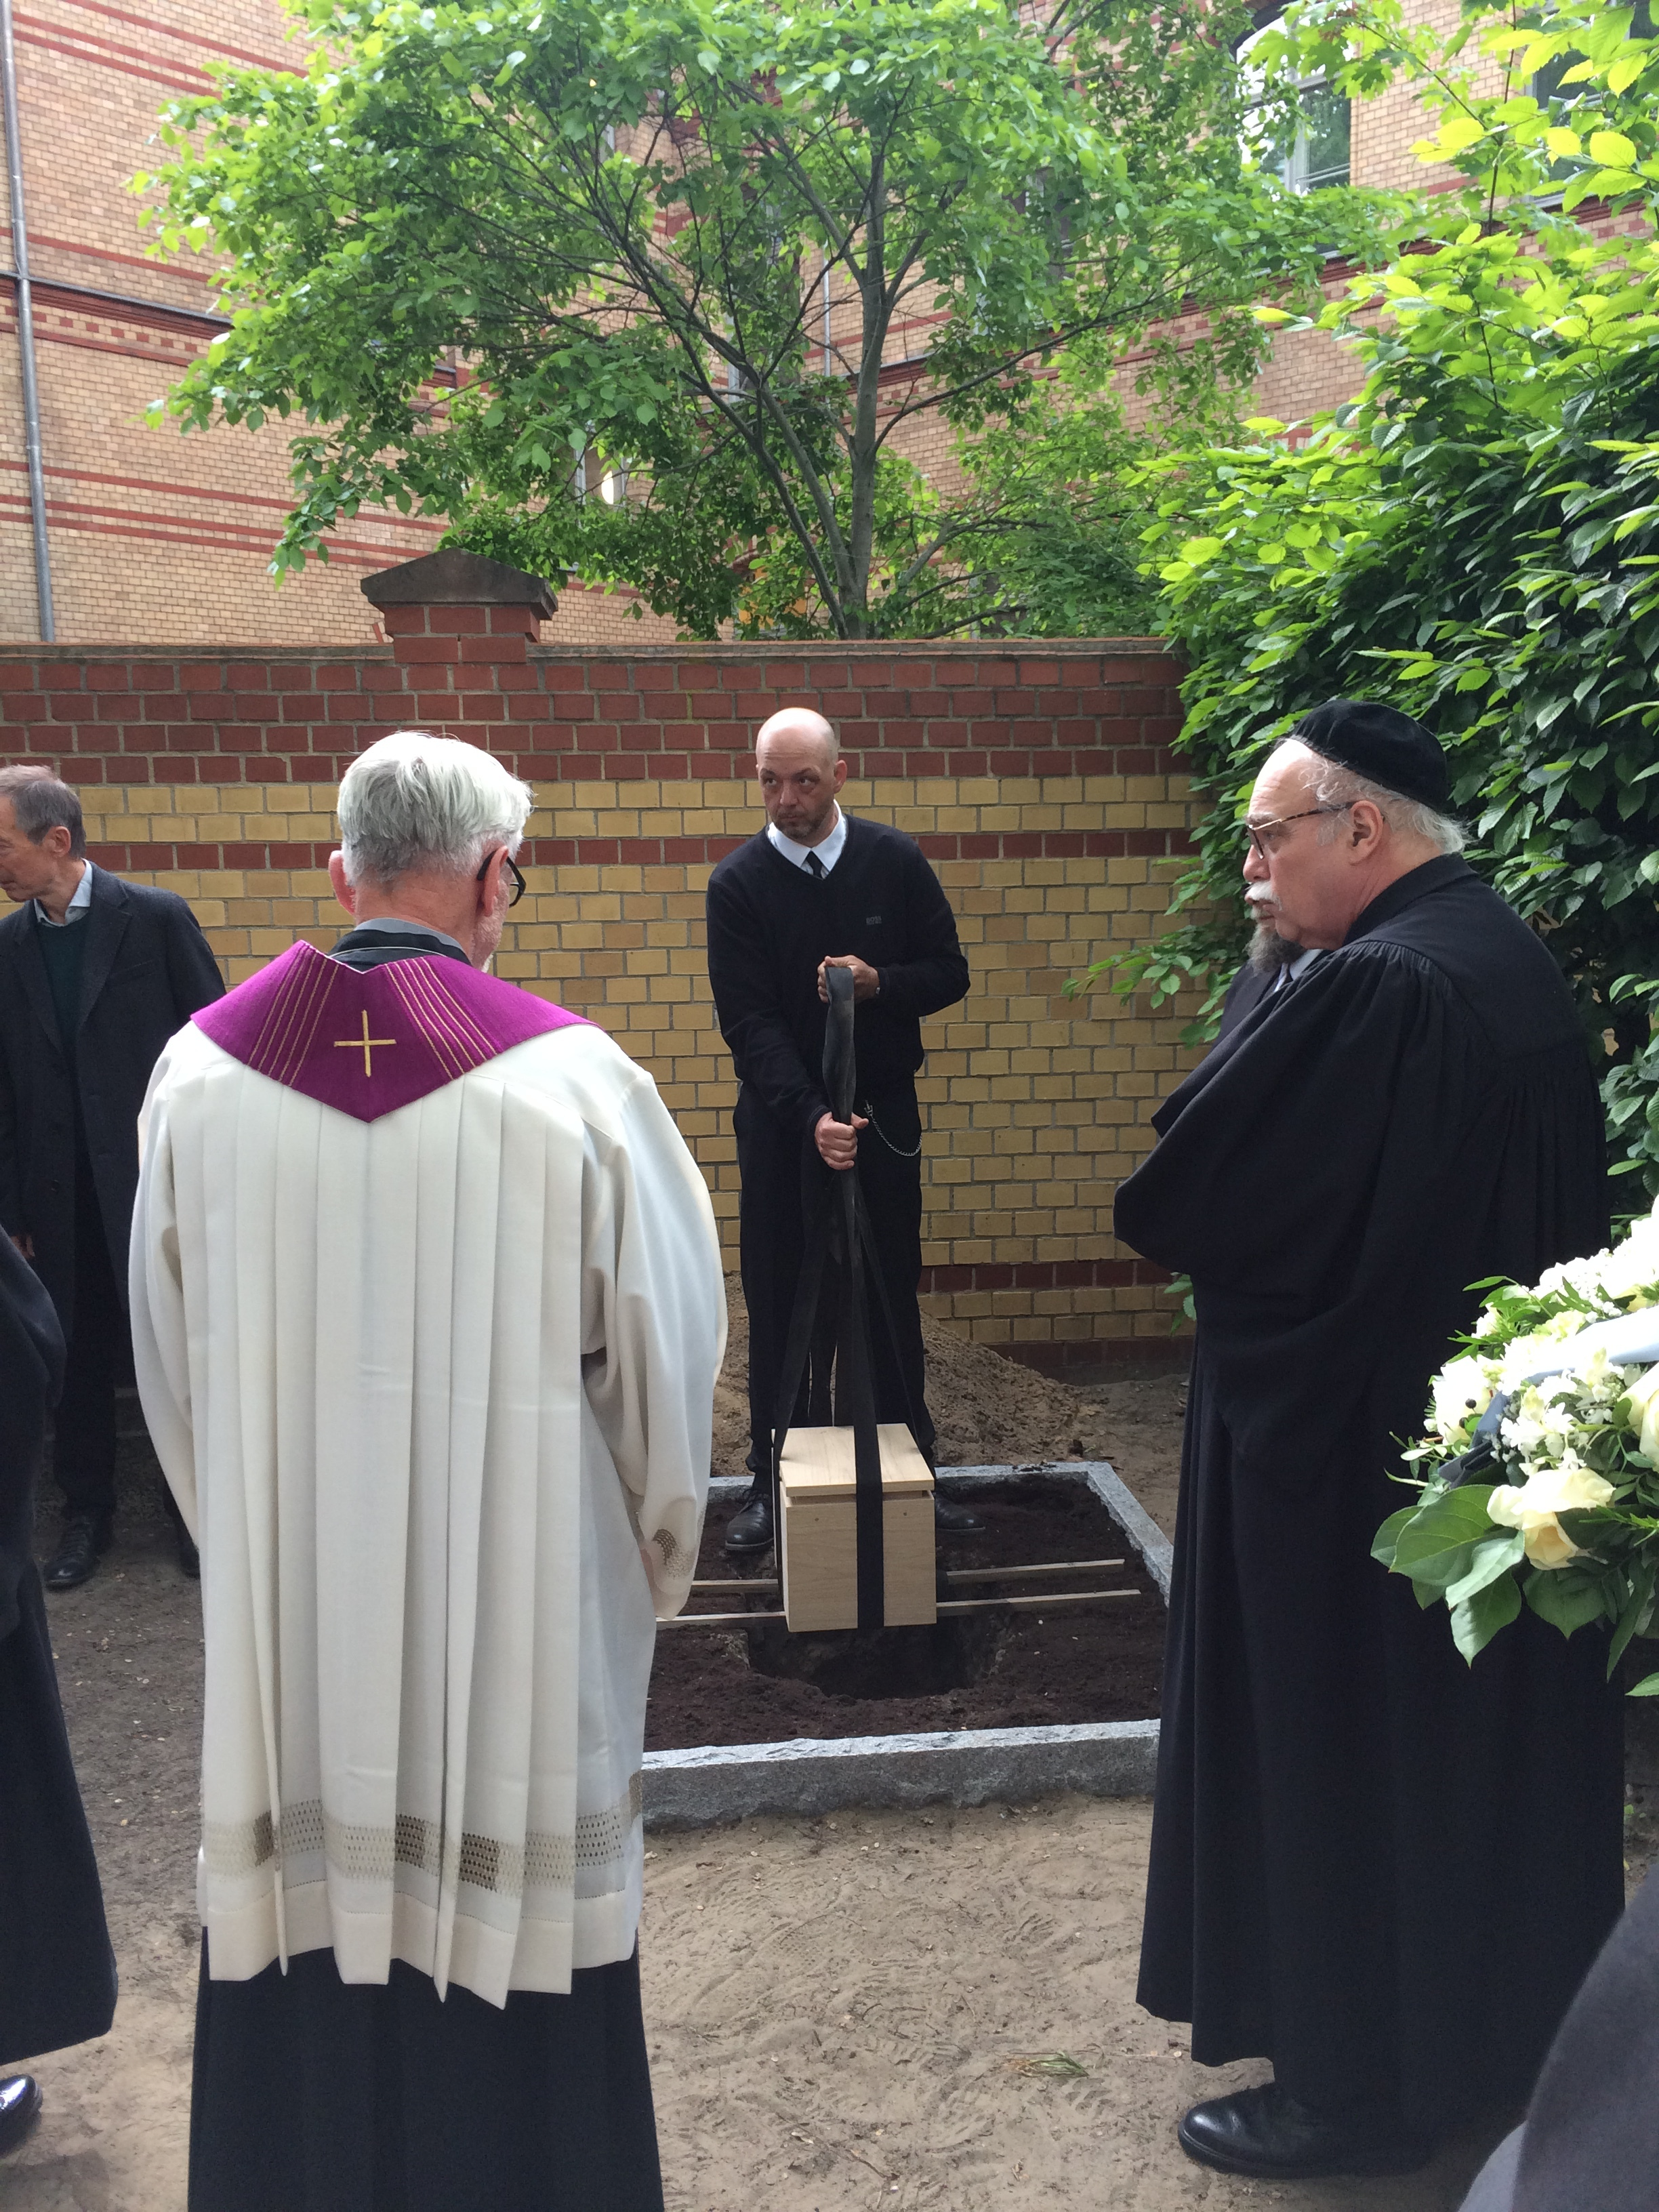 Dr. Johannes Tuchel, the historian who heads the German Resistance Memorial, lowers the remains as part of the burial ceremony.  Photo by Art Heitzer